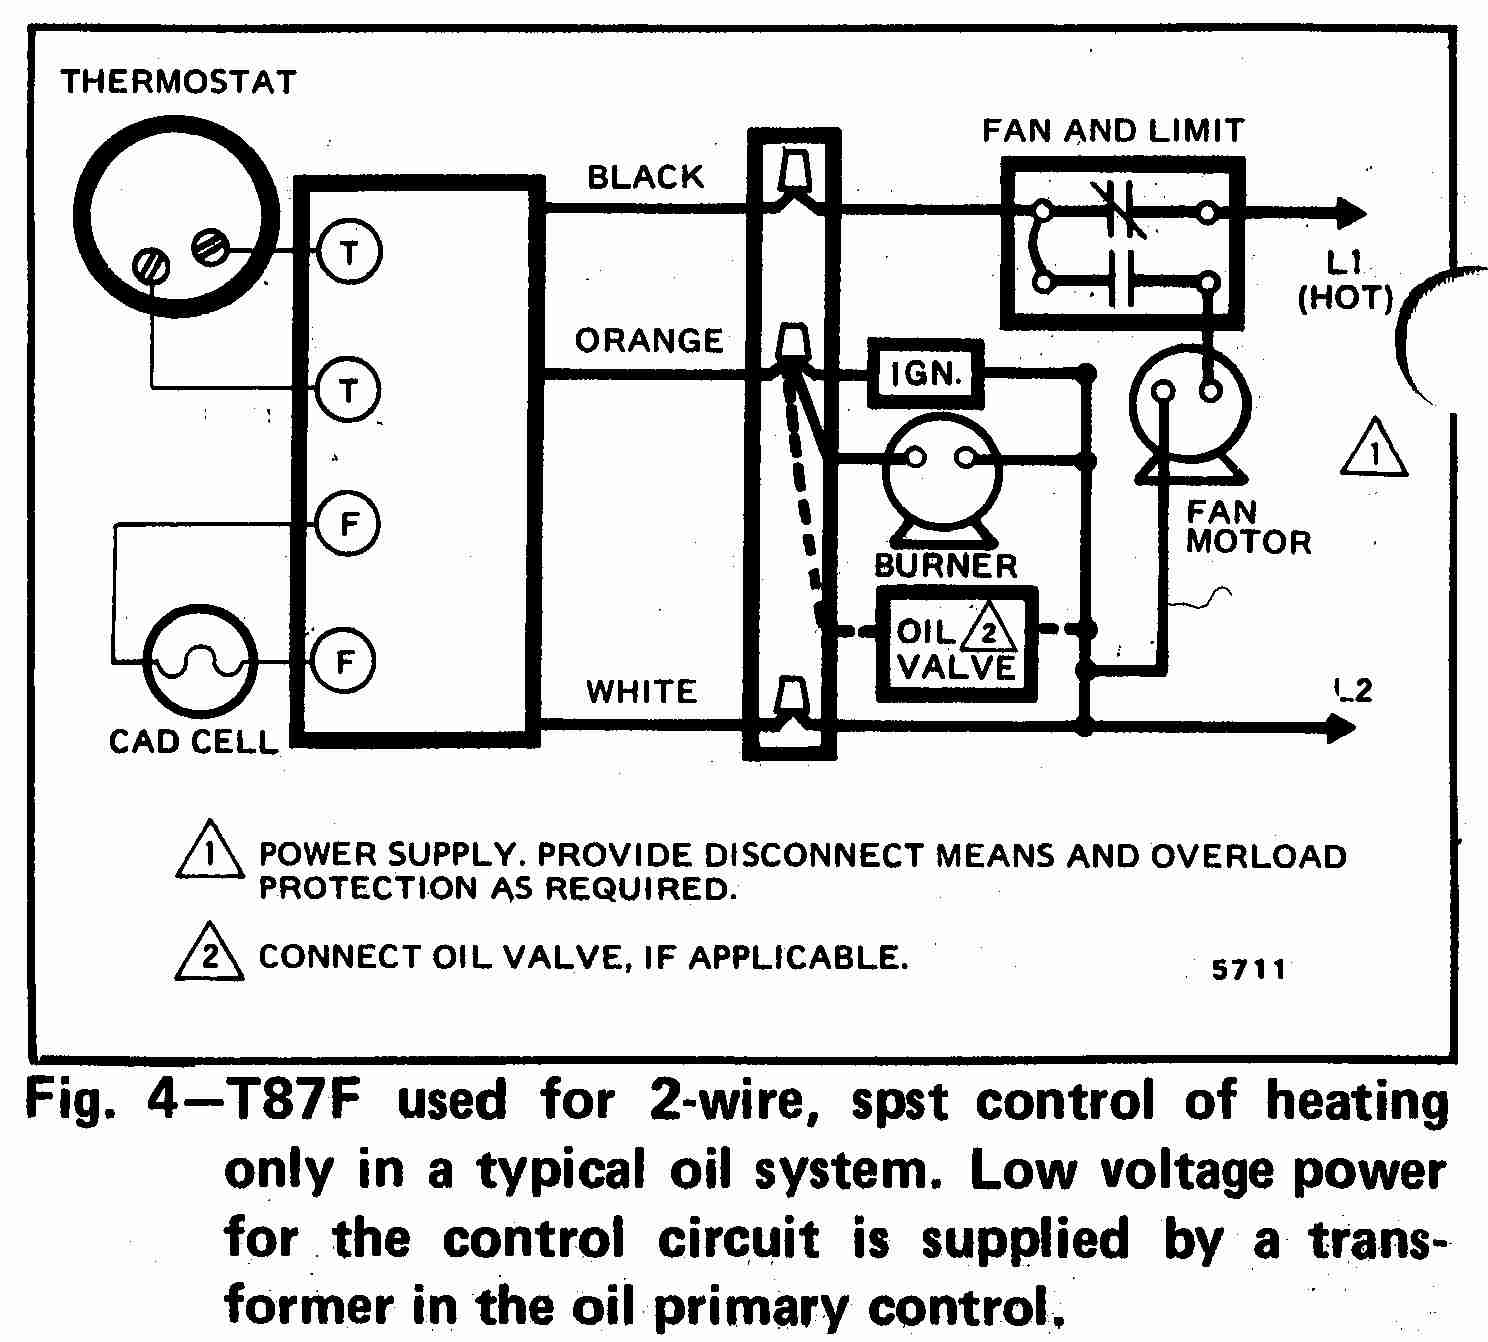 TT_T87F_0002_2W_DJF room thermostat wiring diagrams for hvac systems typical thermostat wiring diagram at soozxer.org